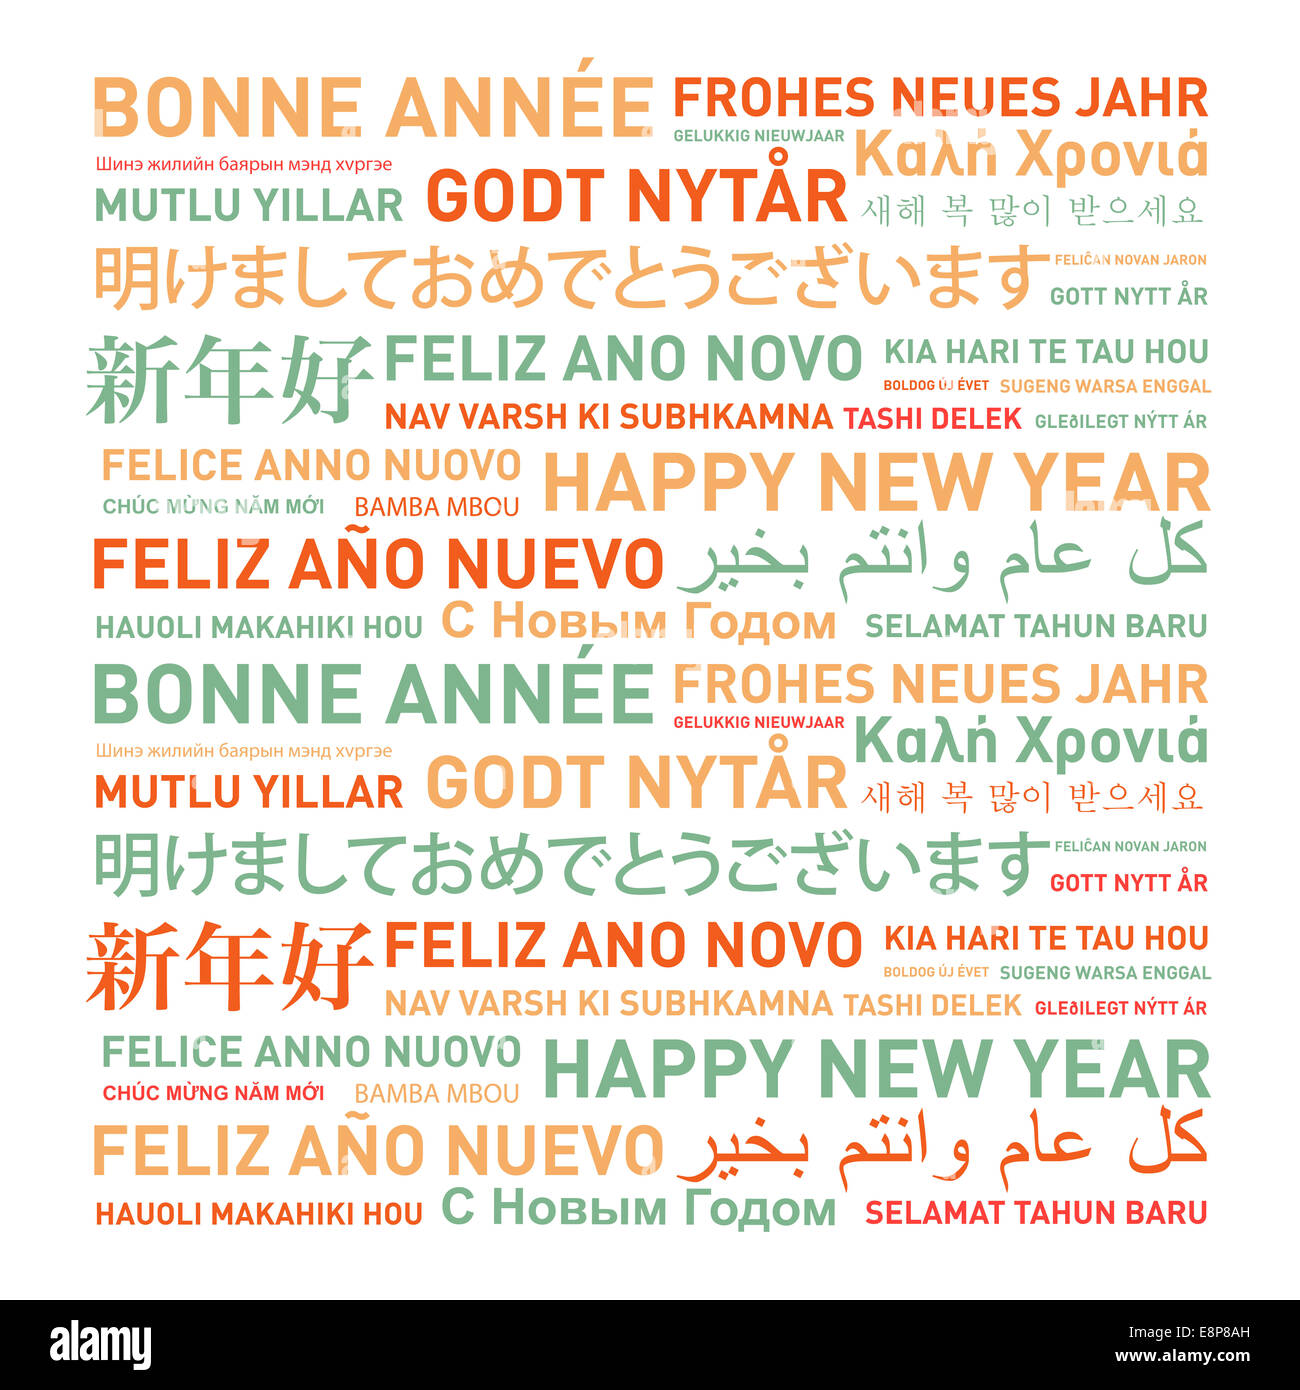 Happy New Year From The World Different Languages Celebration - How many types of languages are there in the world